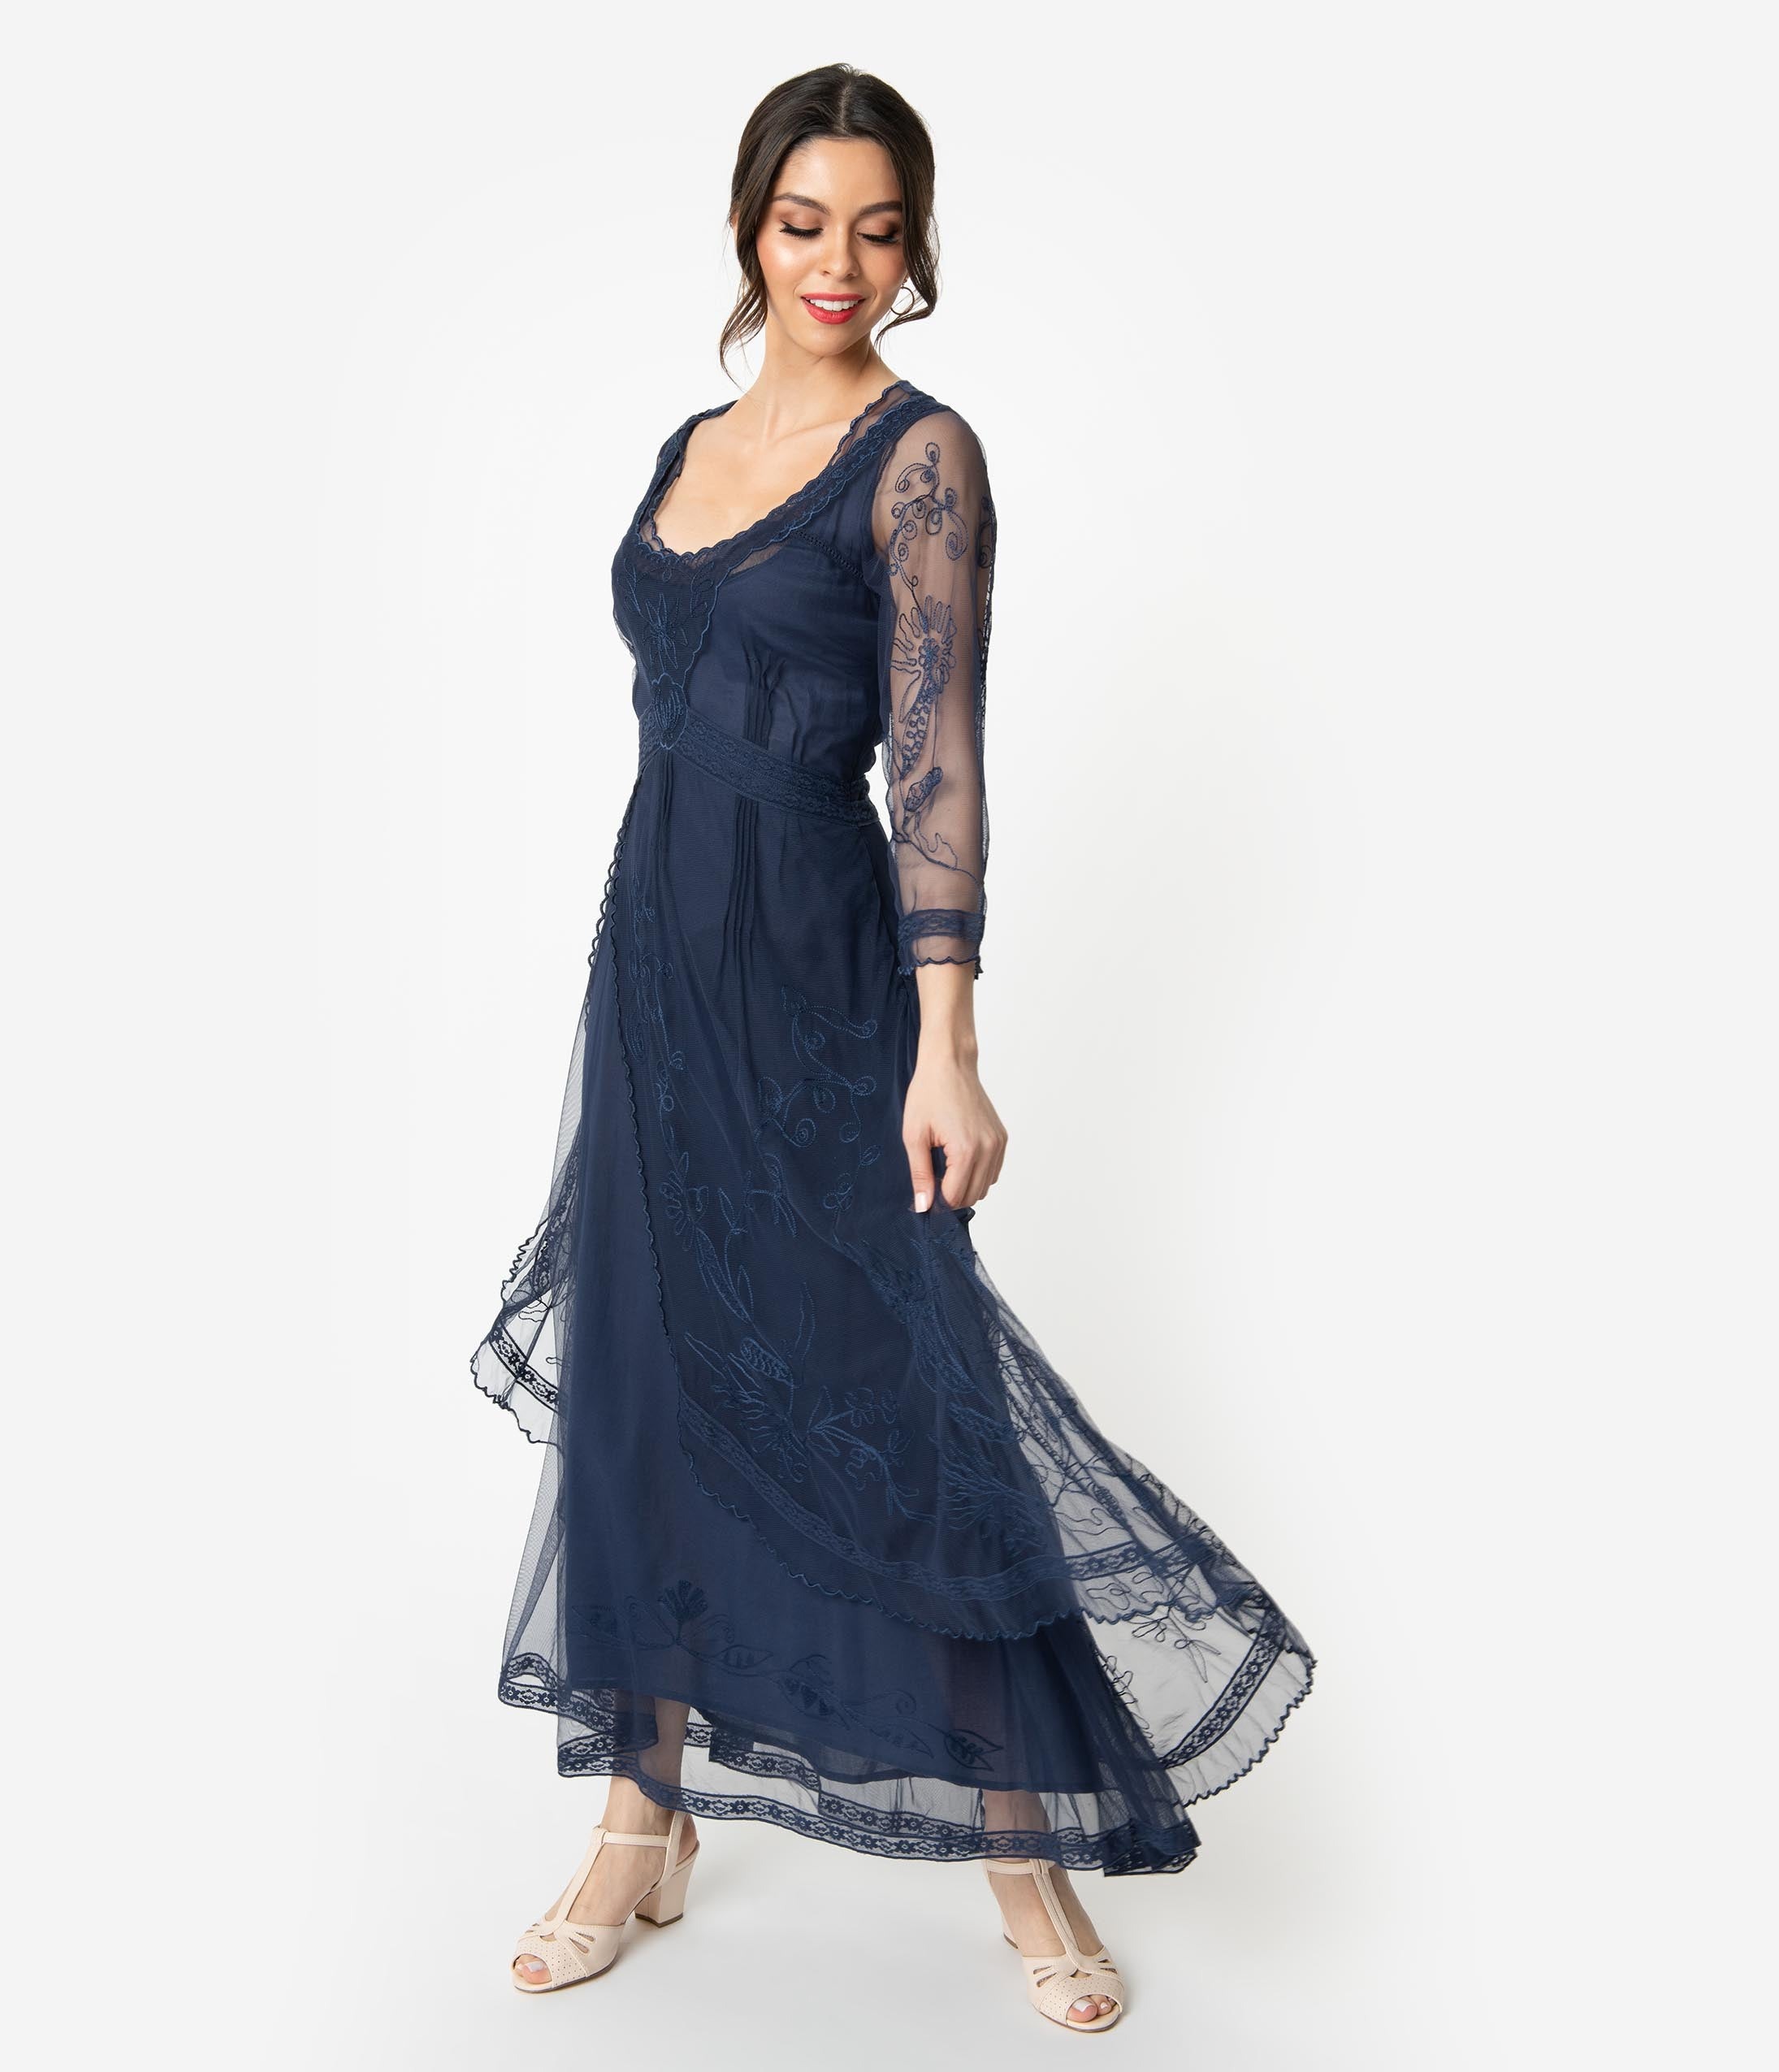 Edwardian Evening Dress History | Ballgowns, Dinner Dress Royal Blue Embroidered Tulle Downton Abbey Edwardian Tea Party Flapper Dress $274.00 AT vintagedancer.com